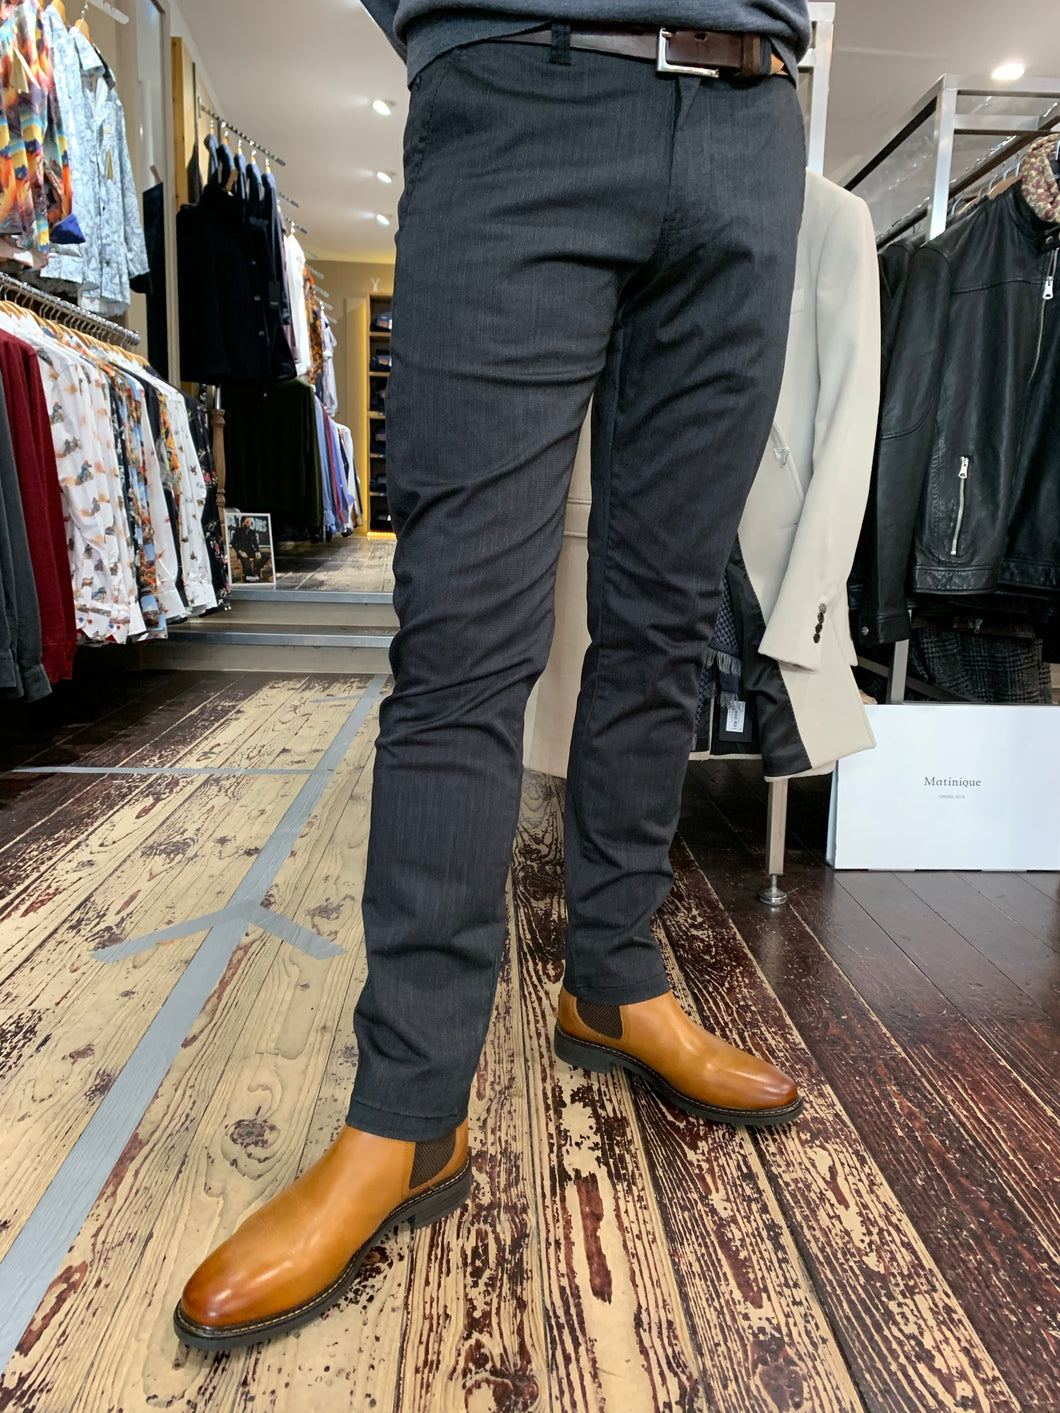 Matinique slim fit chino in grey from Gere Menswear